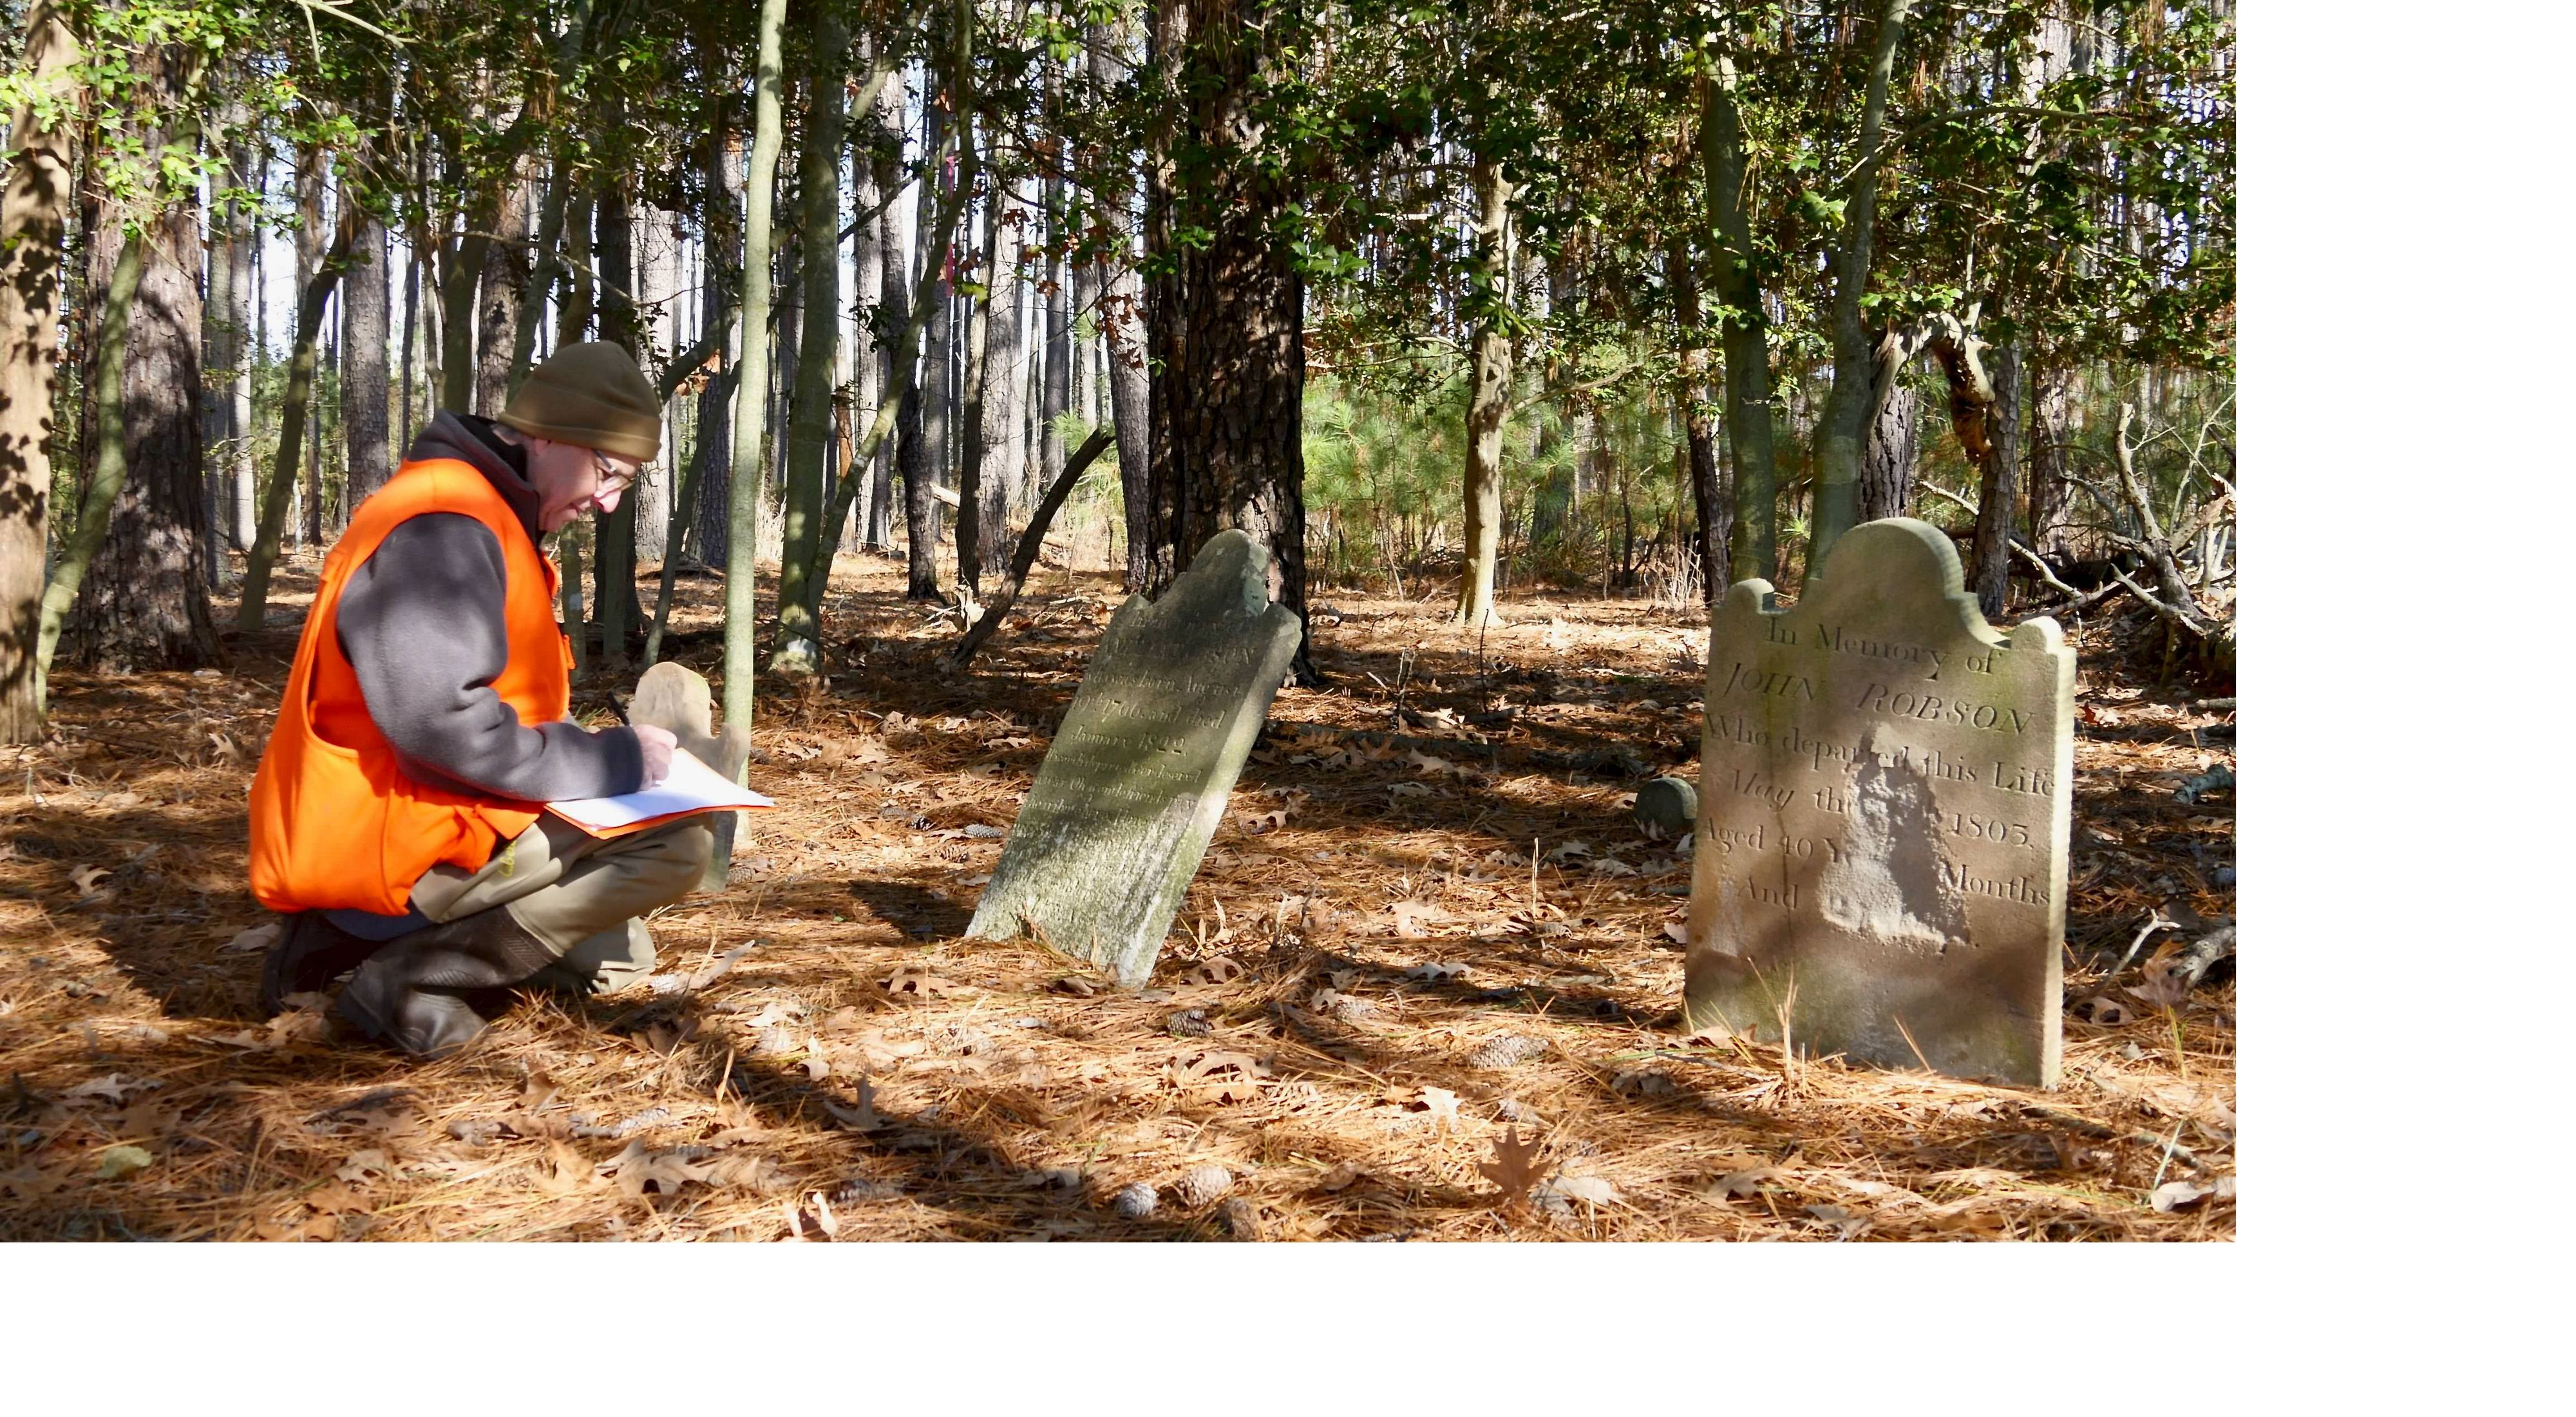 man kneels with pen and paper in front of old tombstone in wooded area